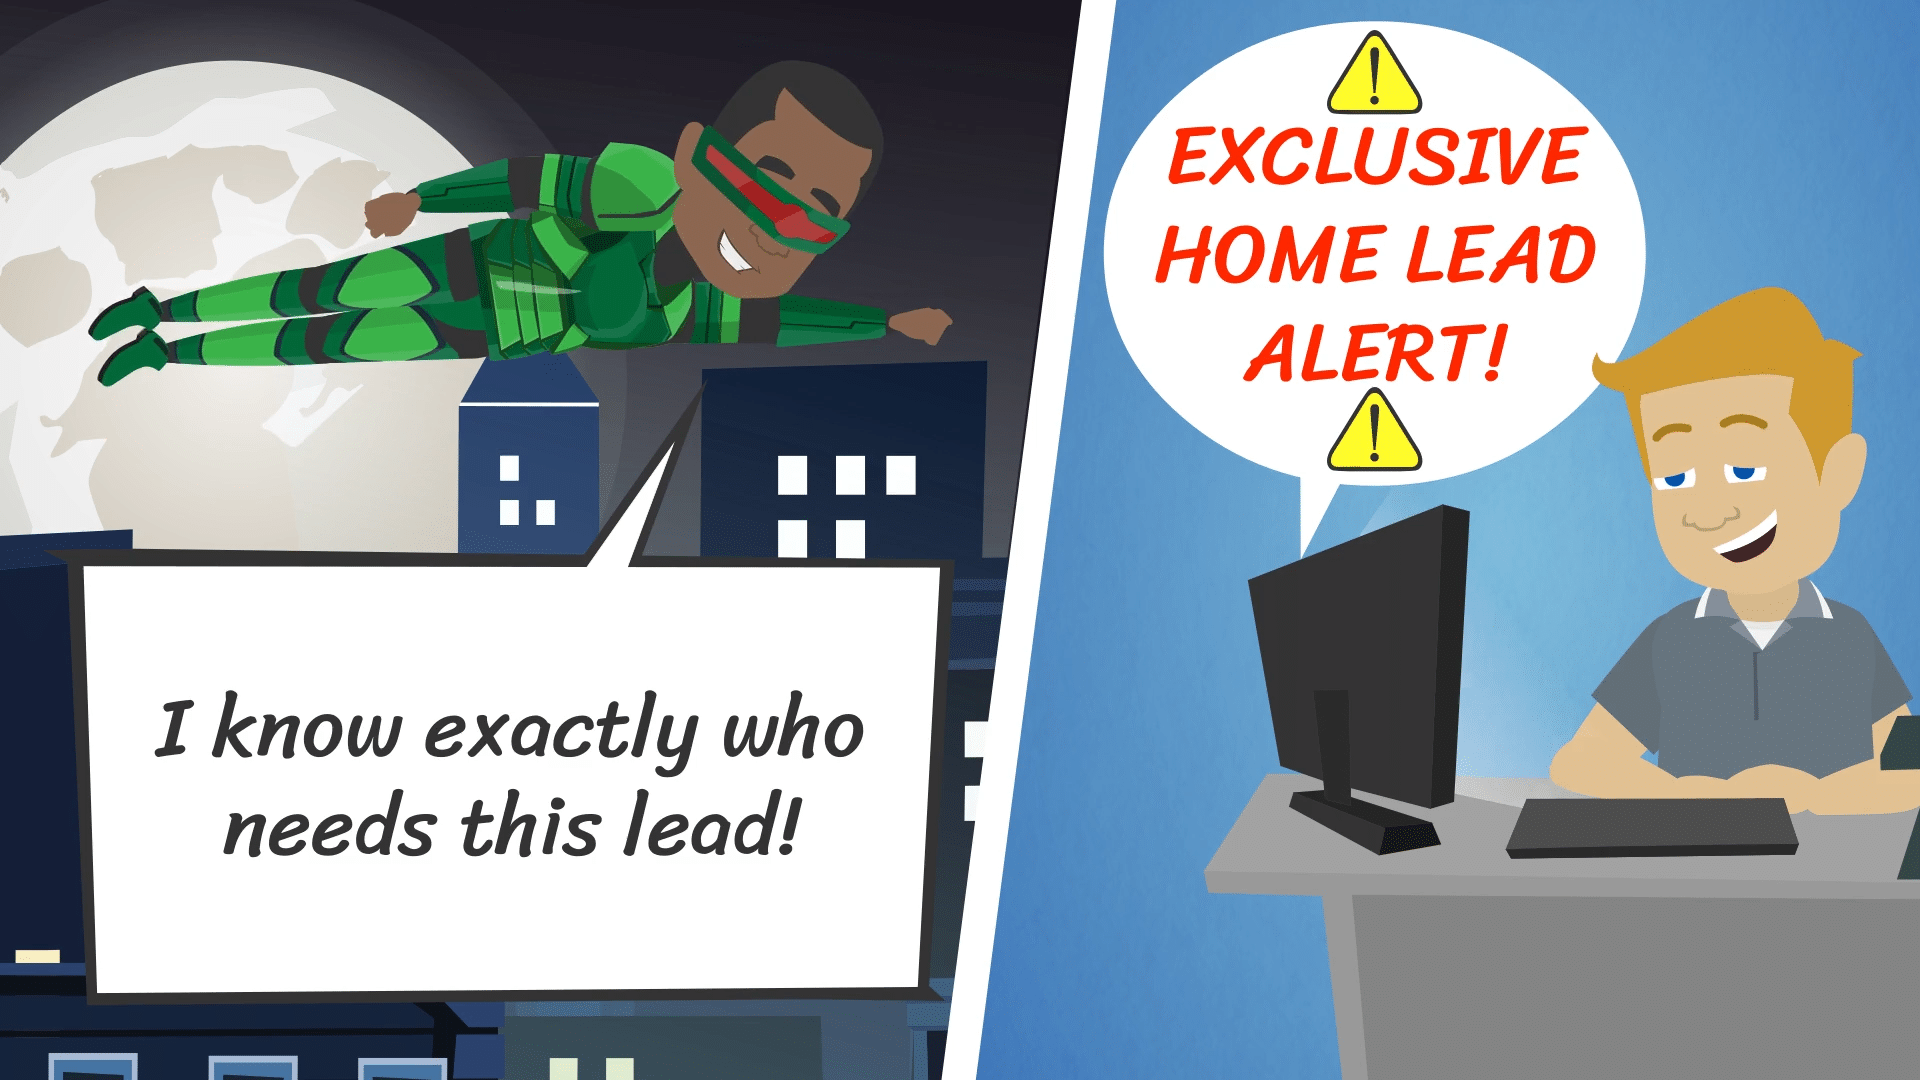 Exclusive Home Lead Alert